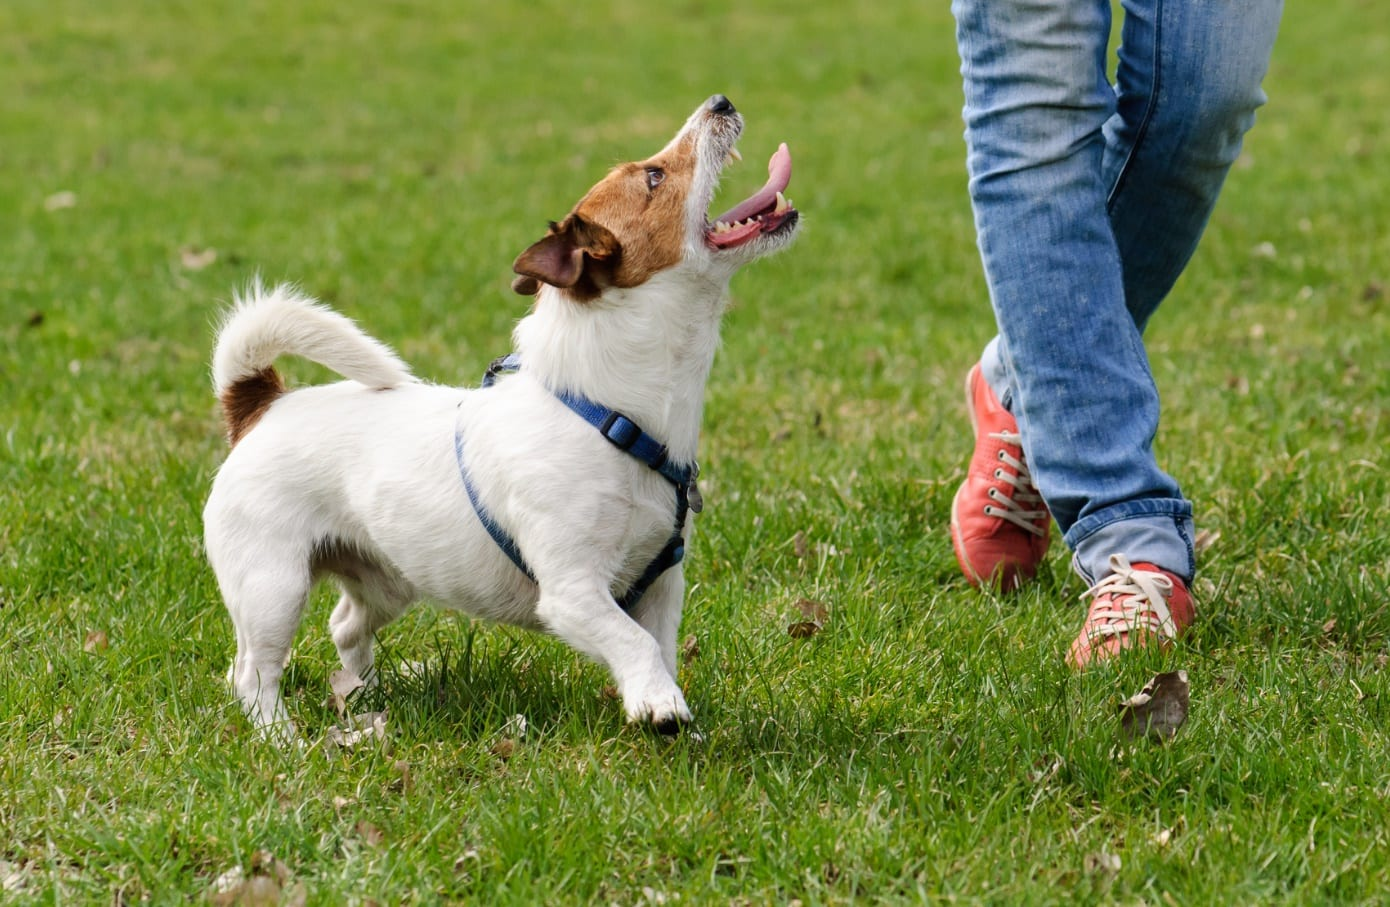 Jack Russell dog walking - Get Your Dog to Listen Better